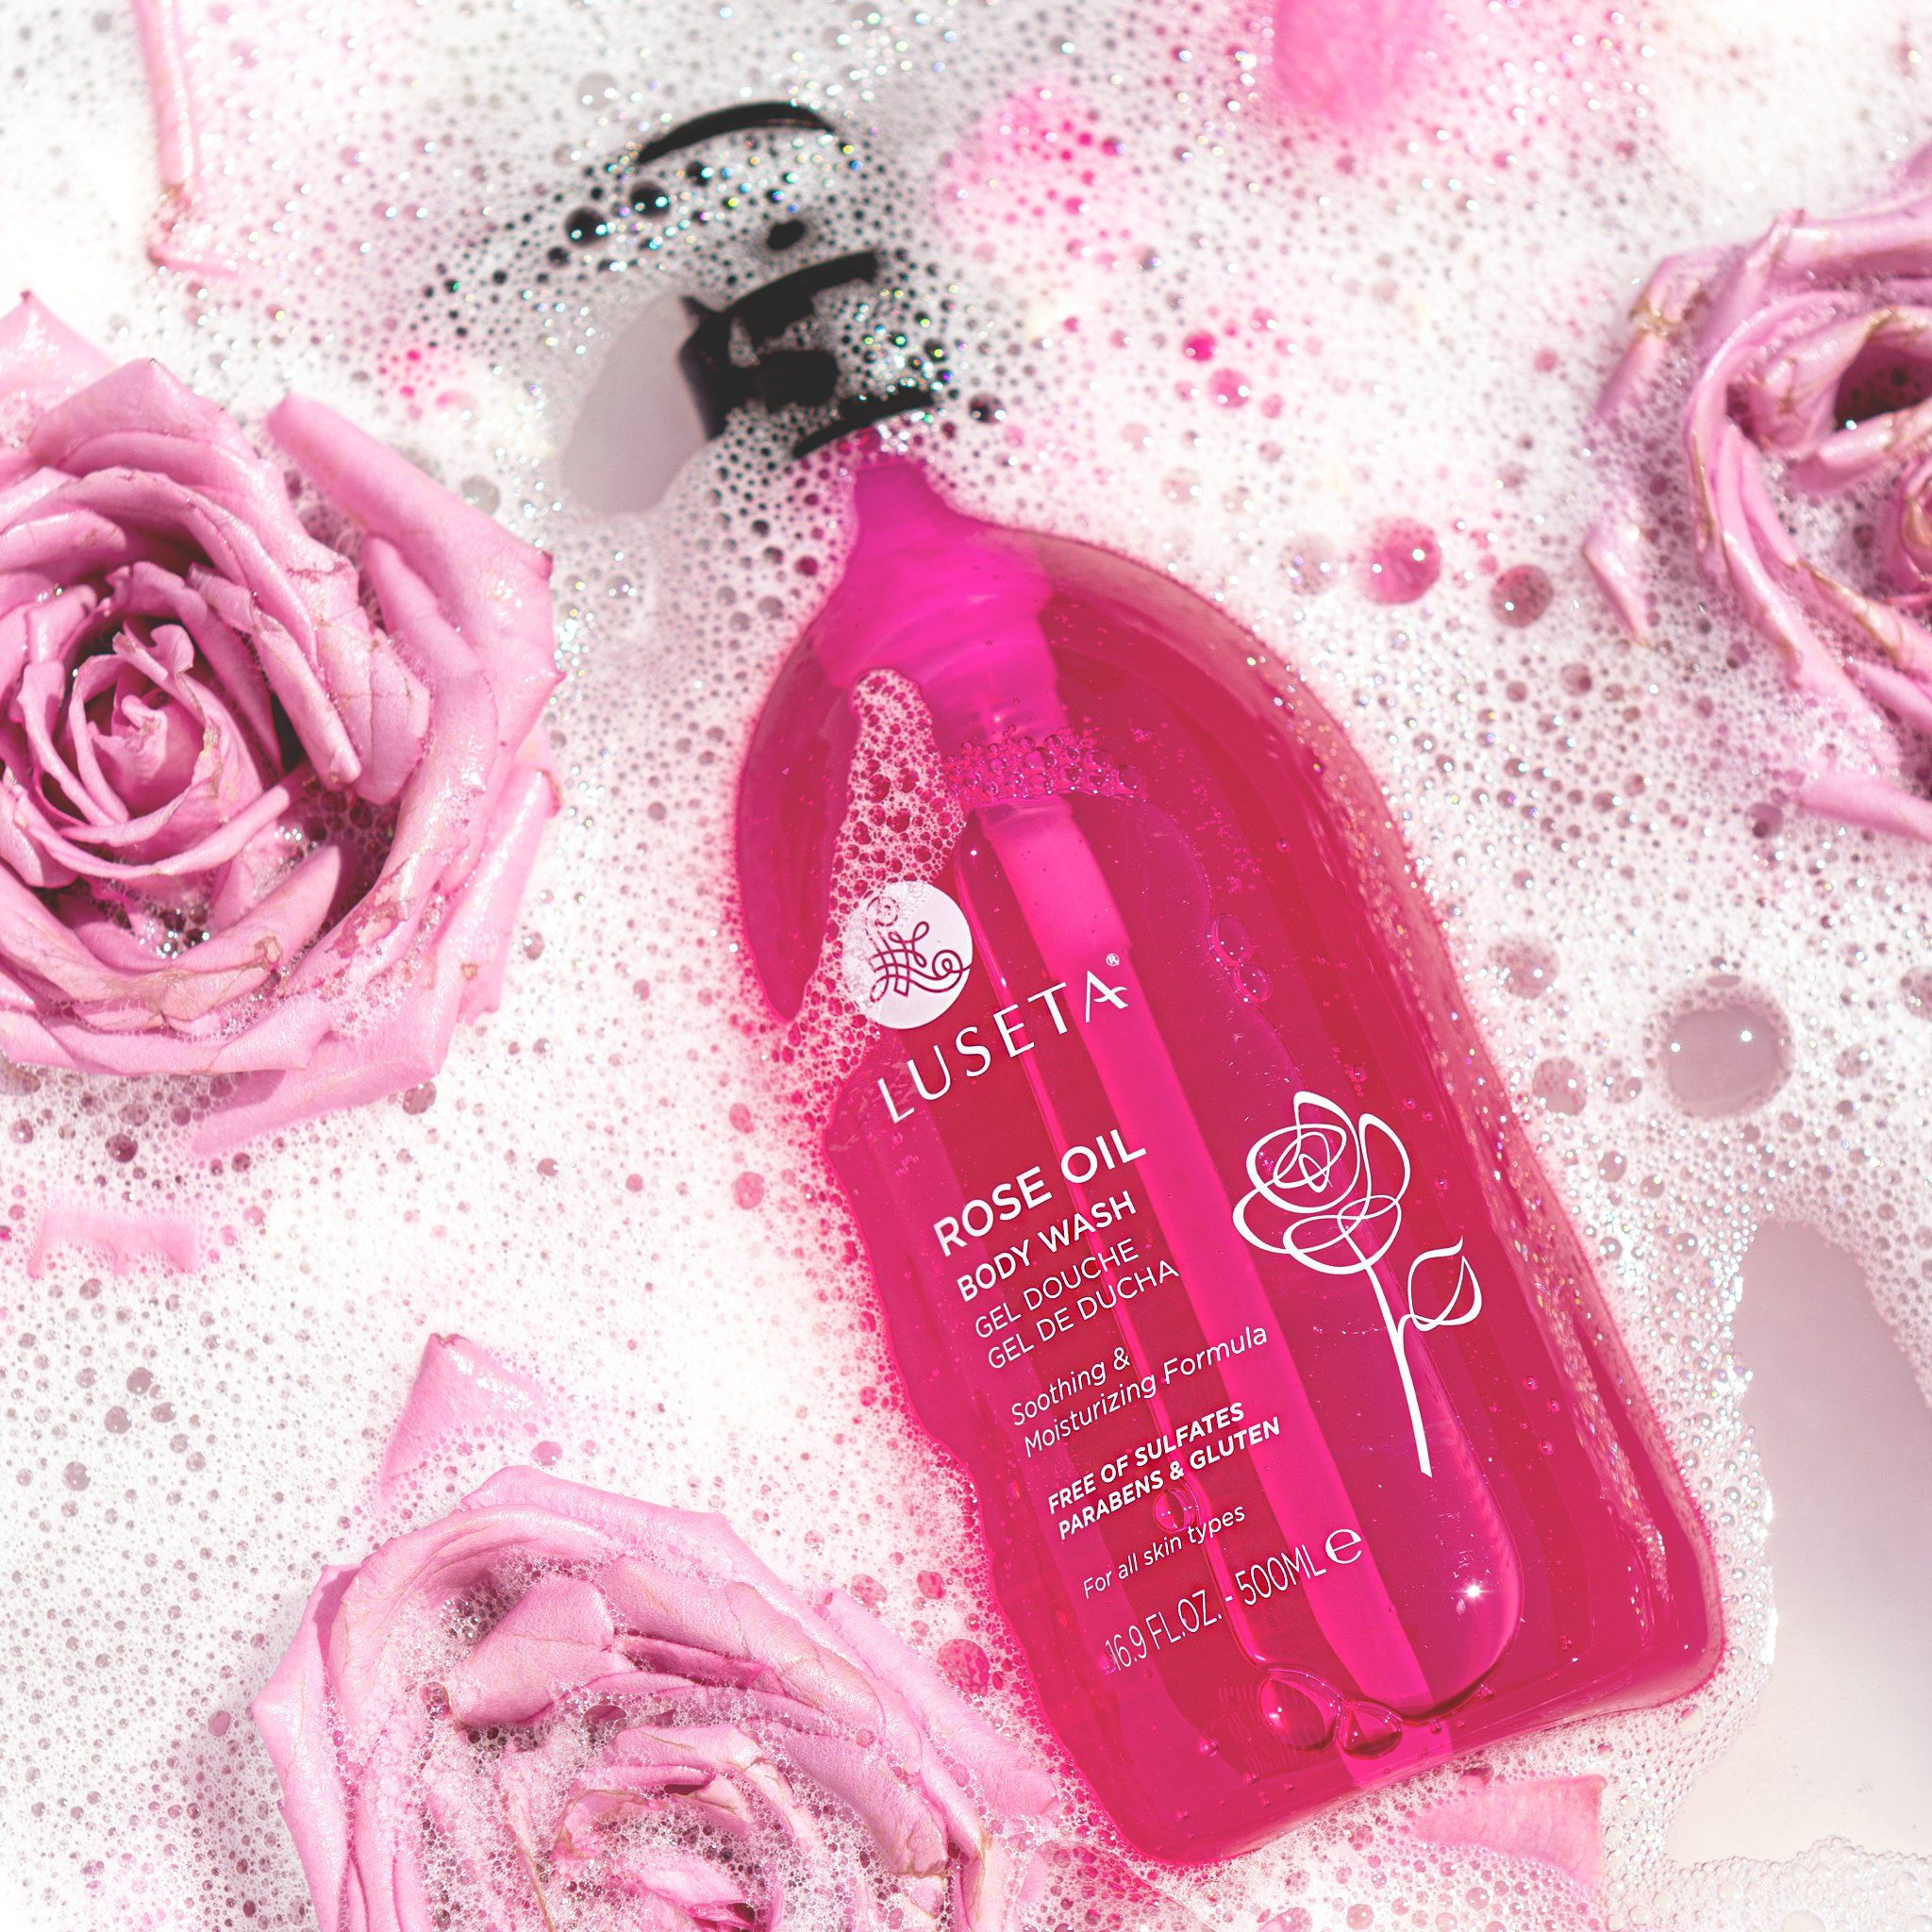 ++Rose Oil Body Wash - Luseta Beauty++